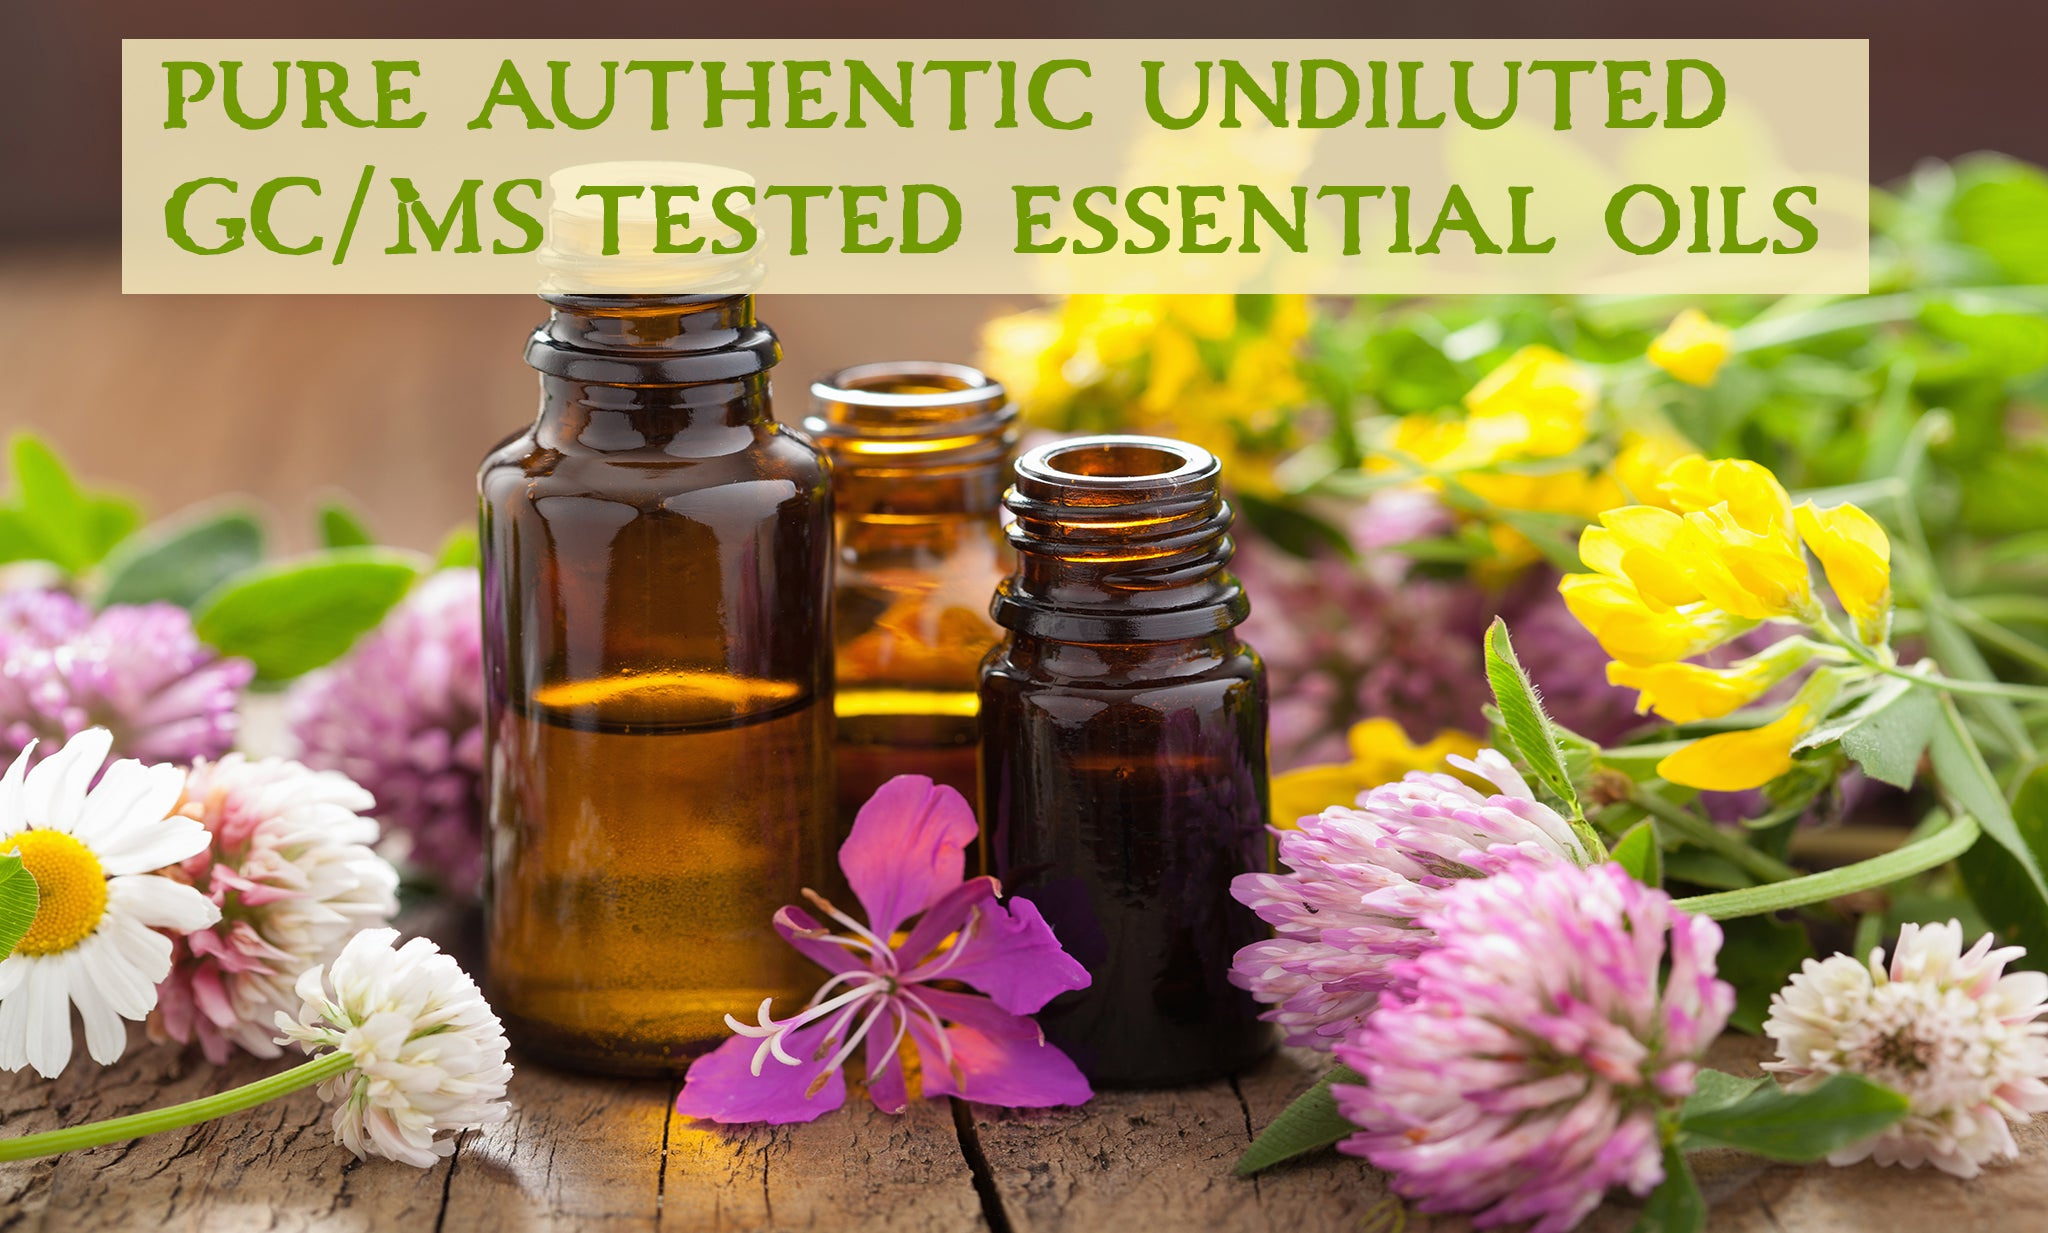 pure authentic unadulterated GC/MS tested undiluted essential oils